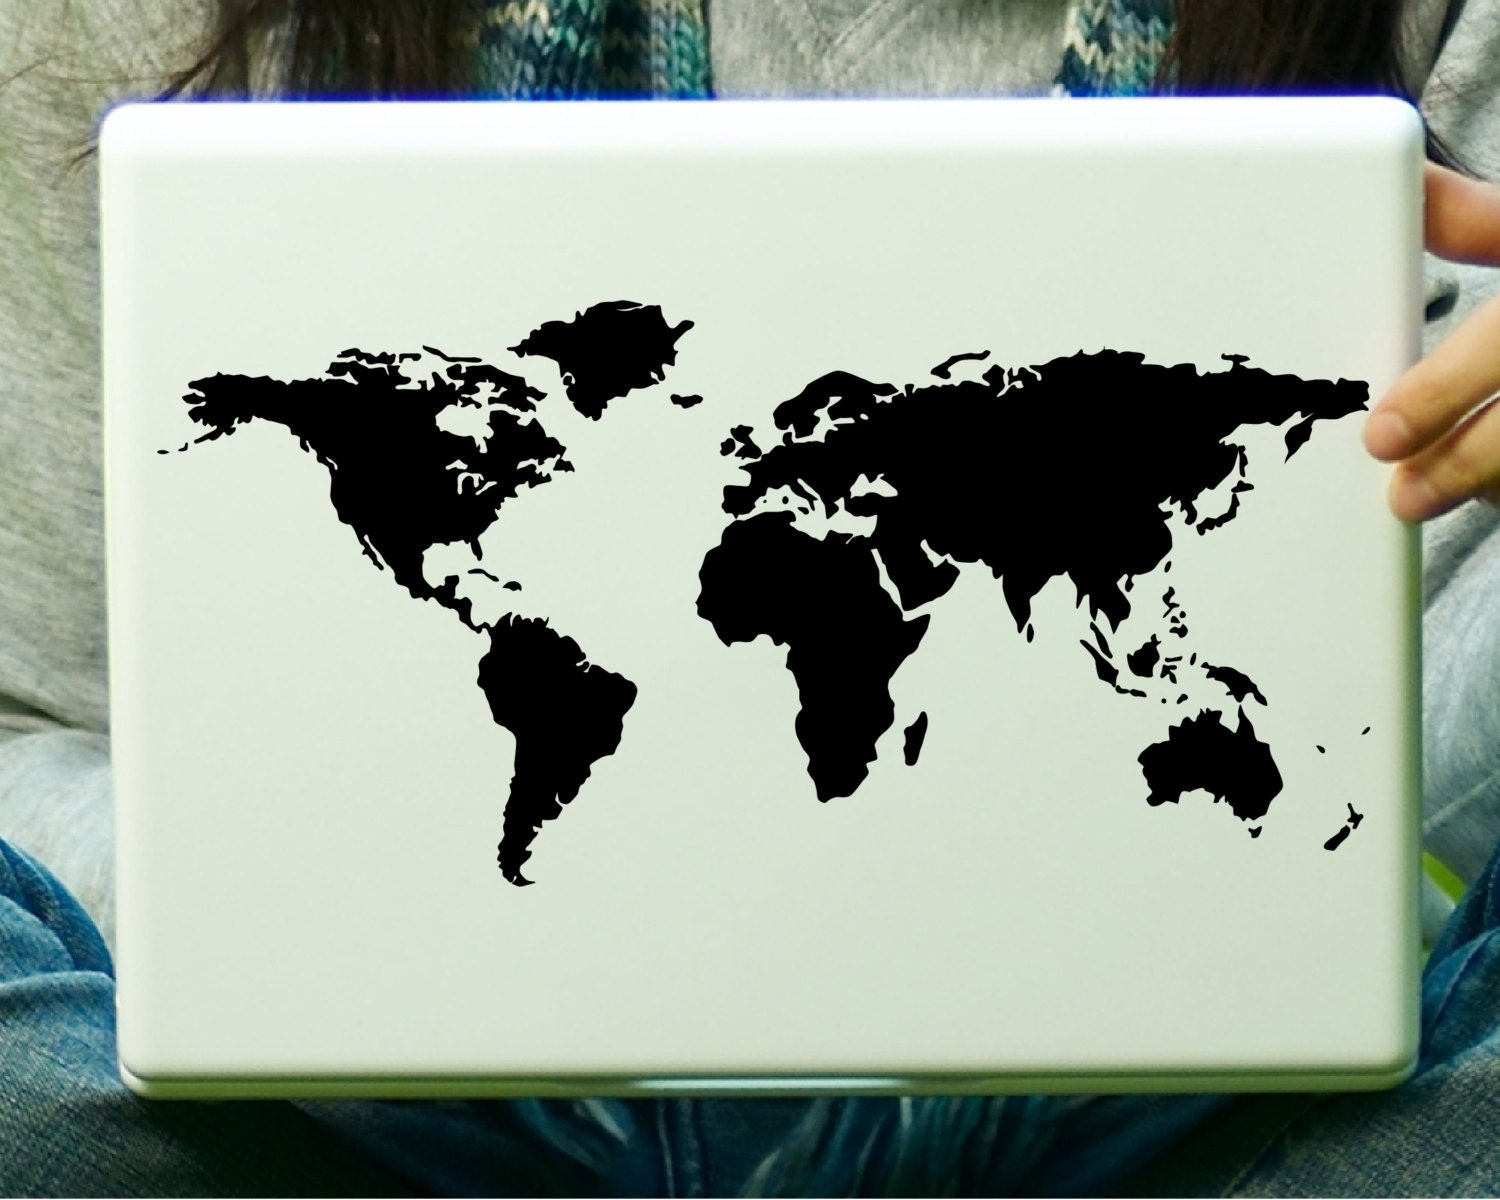 World map sticker for wall india - World Map Laptop Decal Ipad